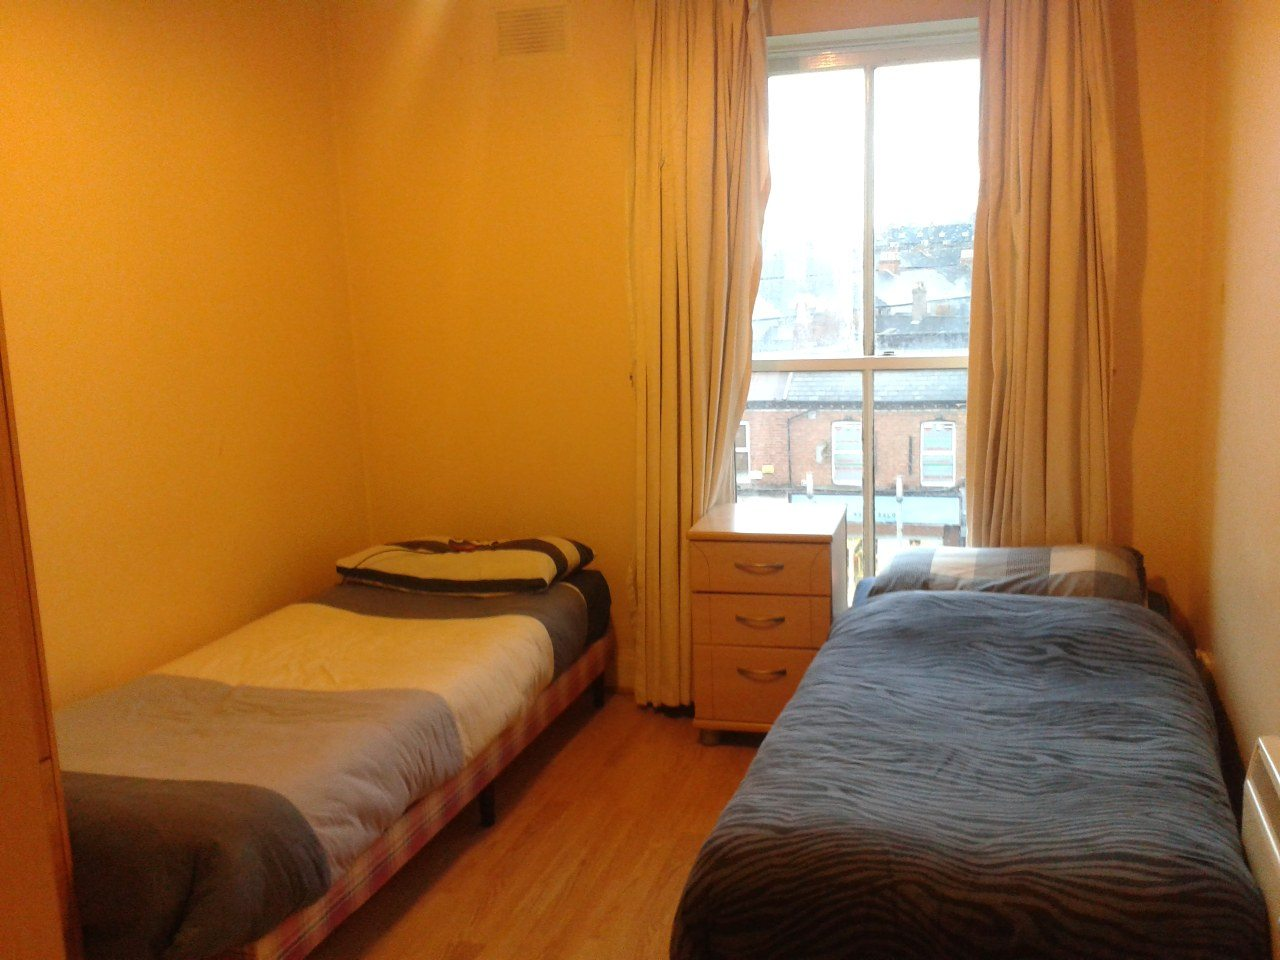 Residence bedroom Dublin